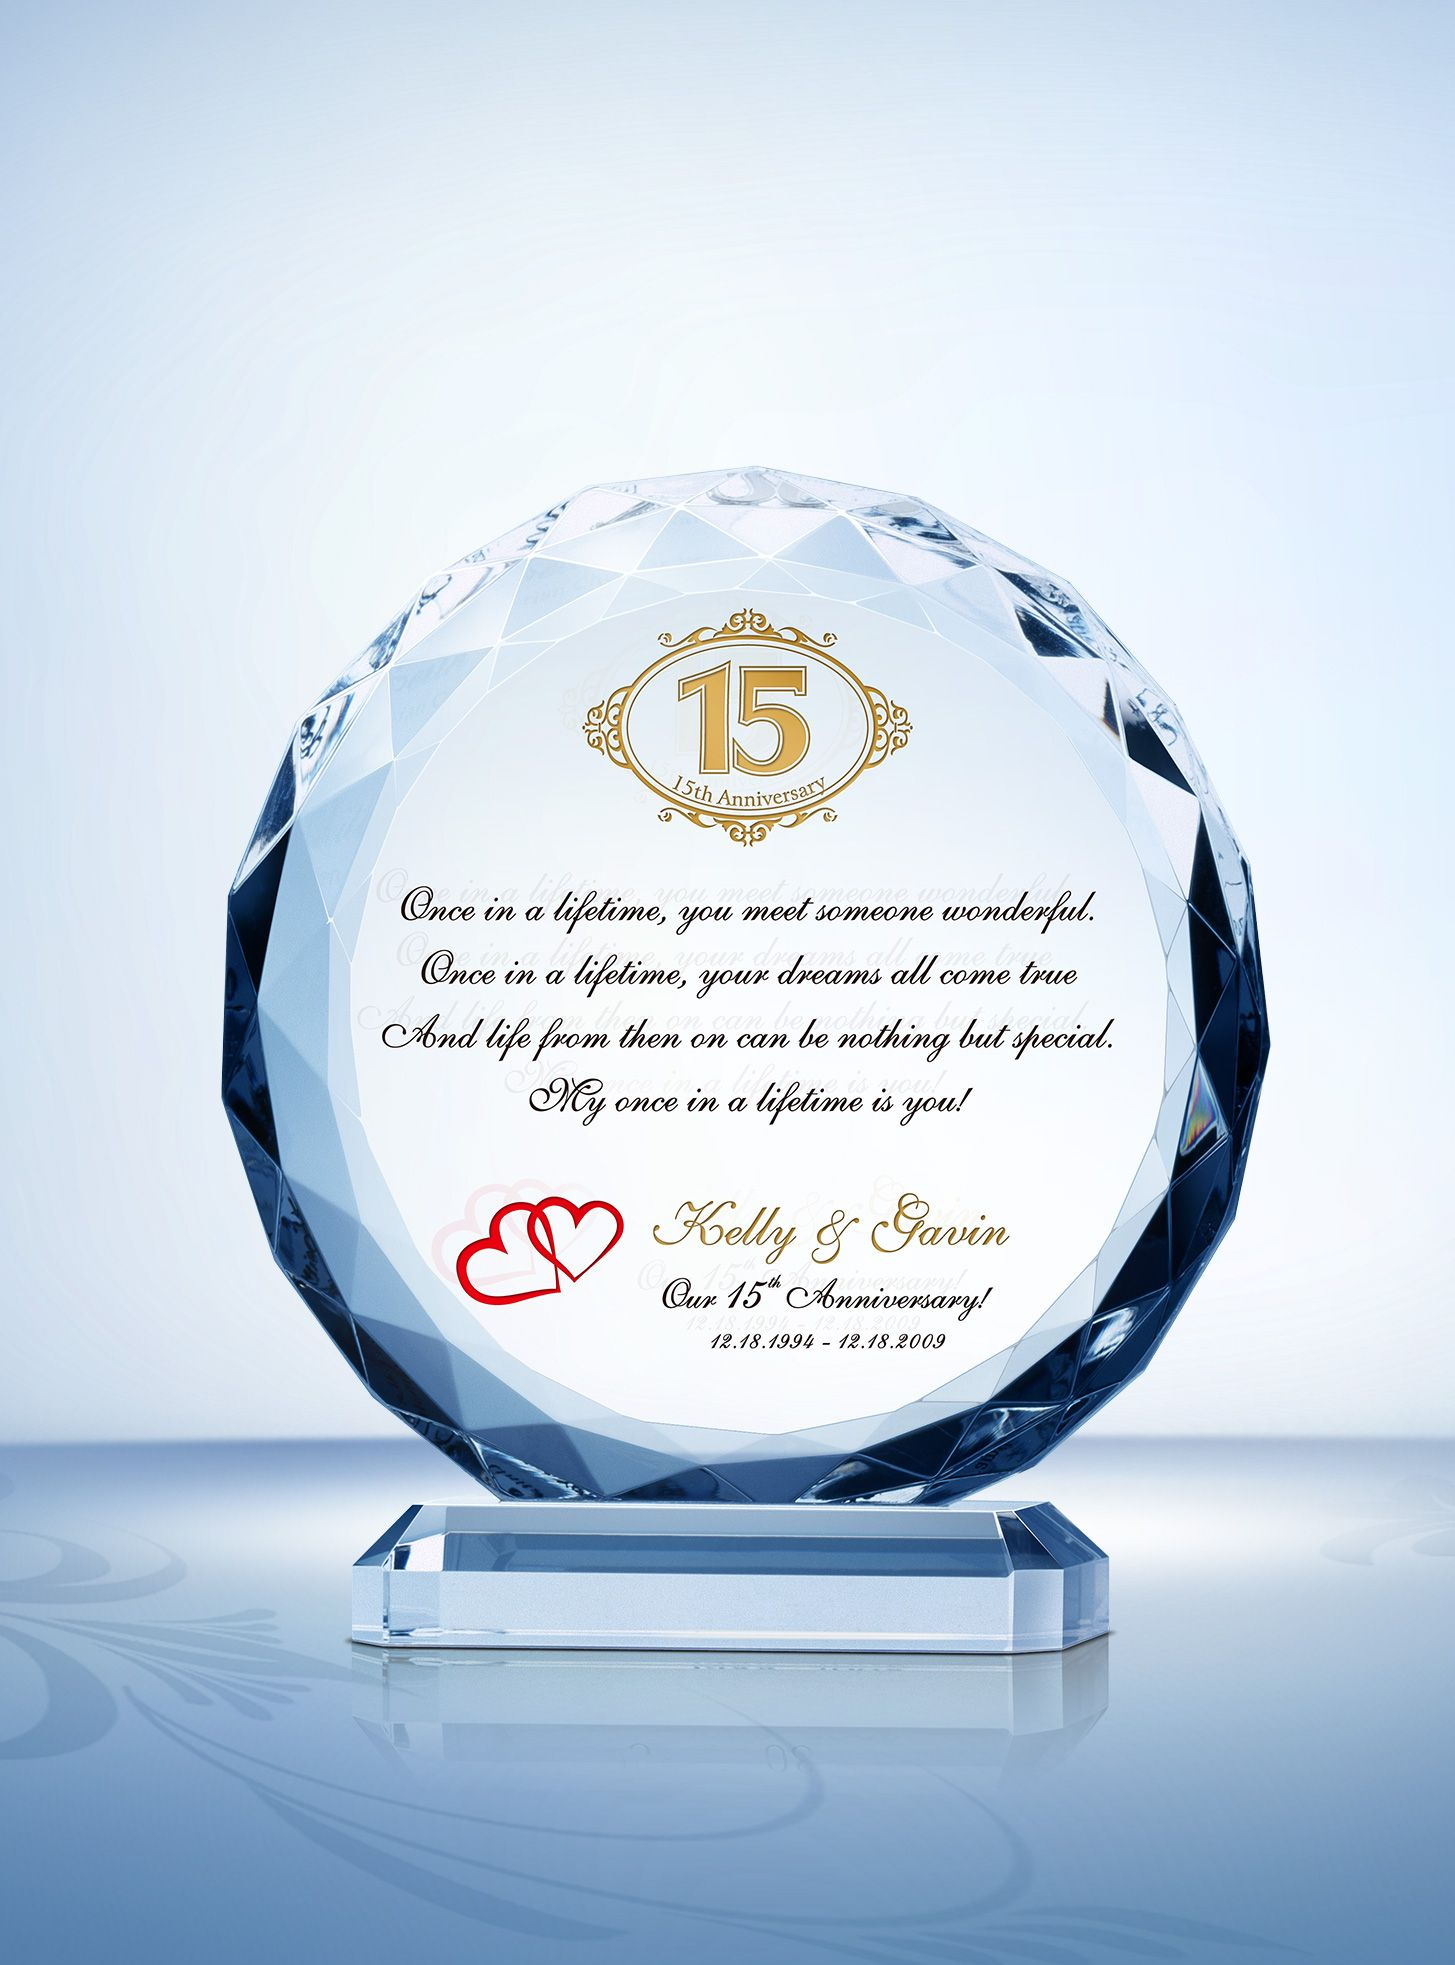 15th (Crystal) Wedding Anniversary Gifts | Wedding anniversary gifts ...